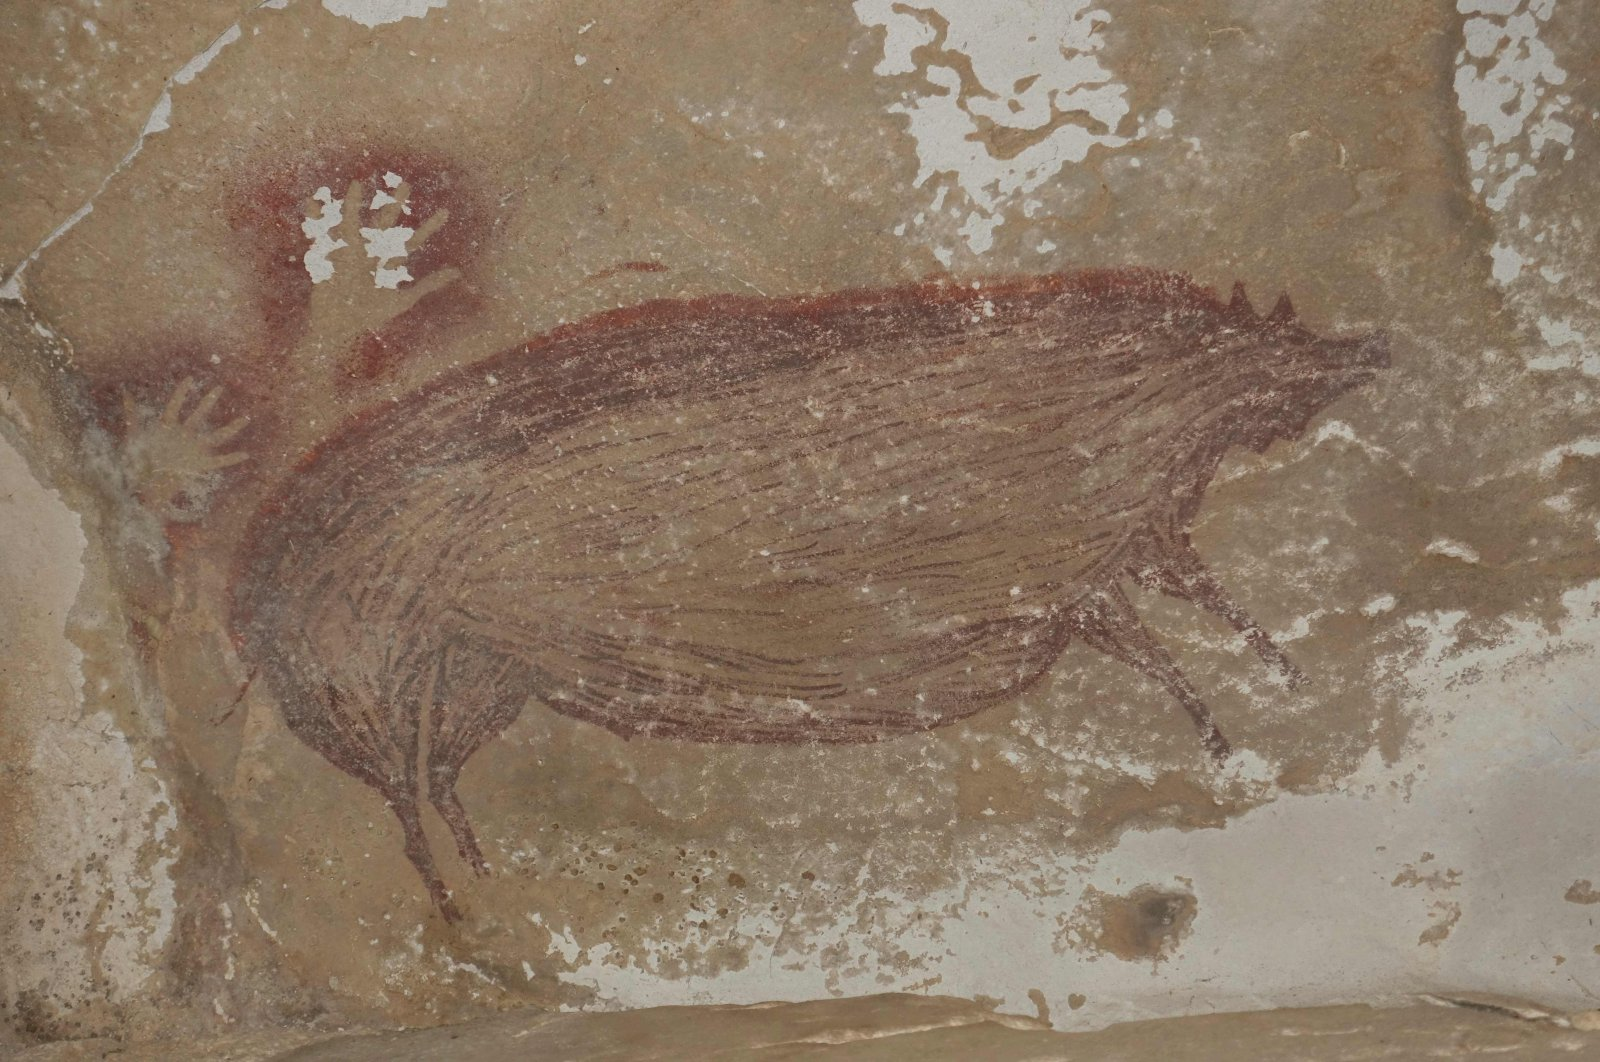 This undated handout photo shows a dated pig painting at Leang Tedongnge in Sulawesi, Indonesia. (AFP Photo)